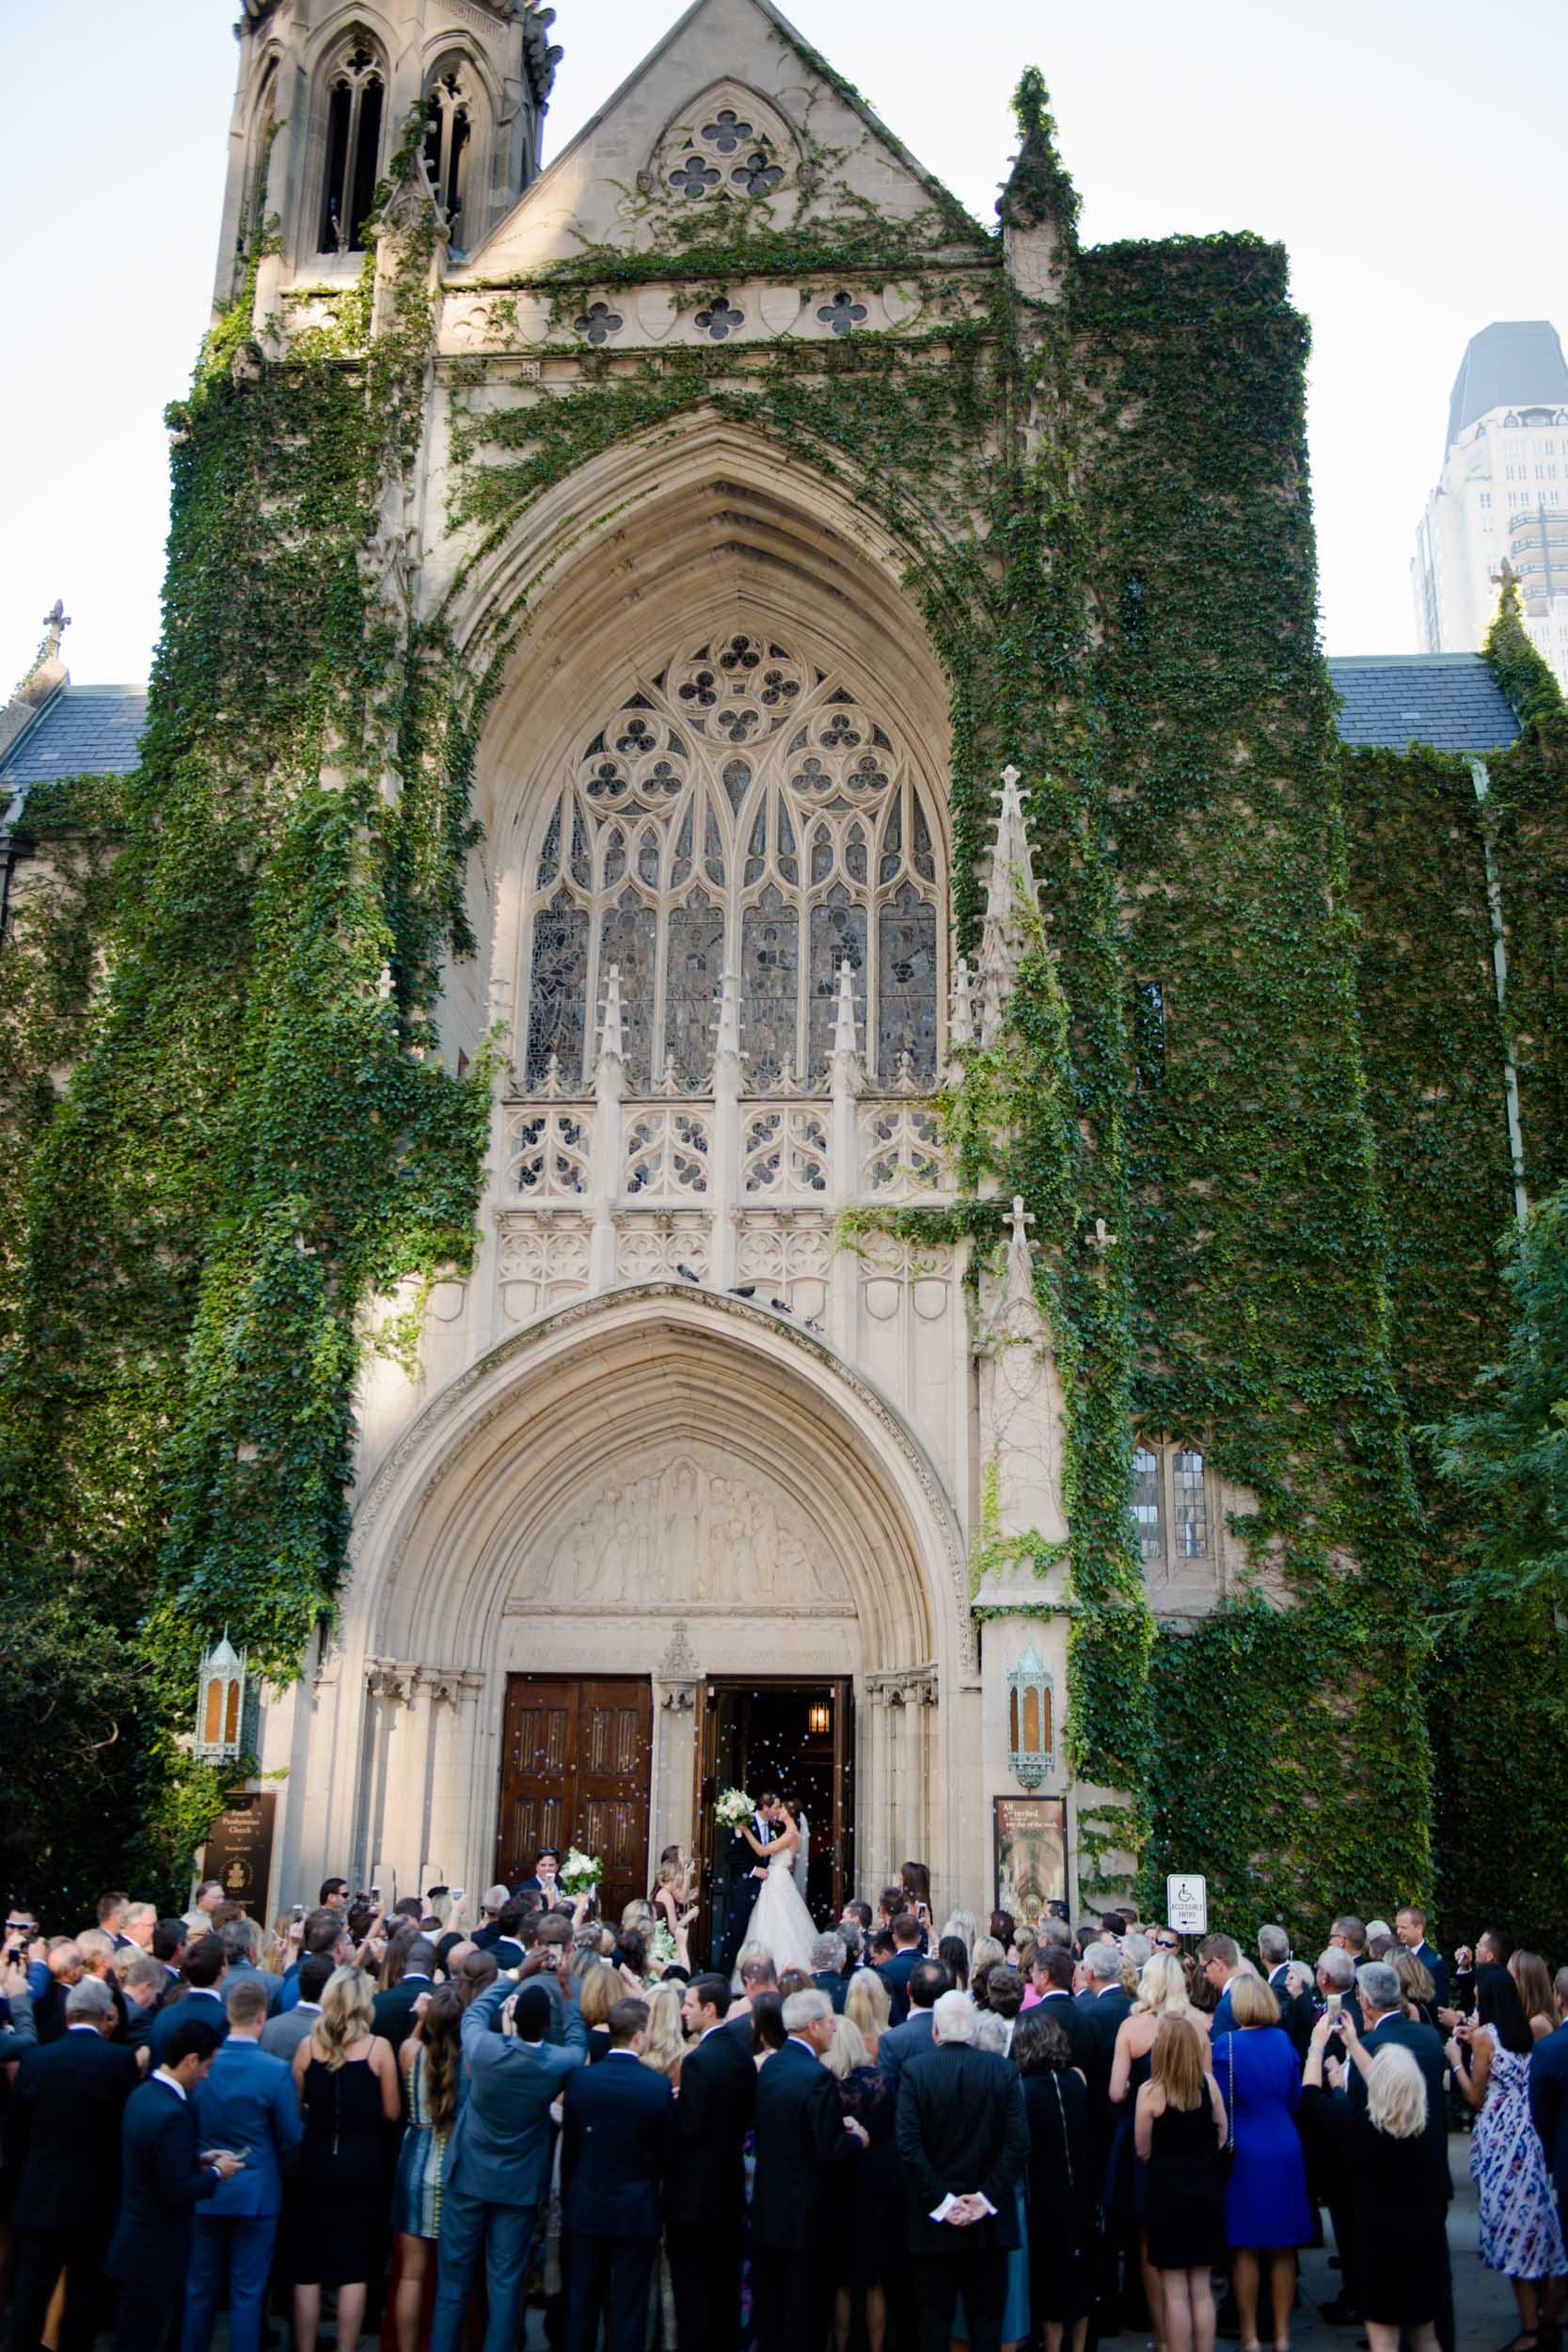 Nancy crossed the street to photograph the bride and groom's exit from the church.